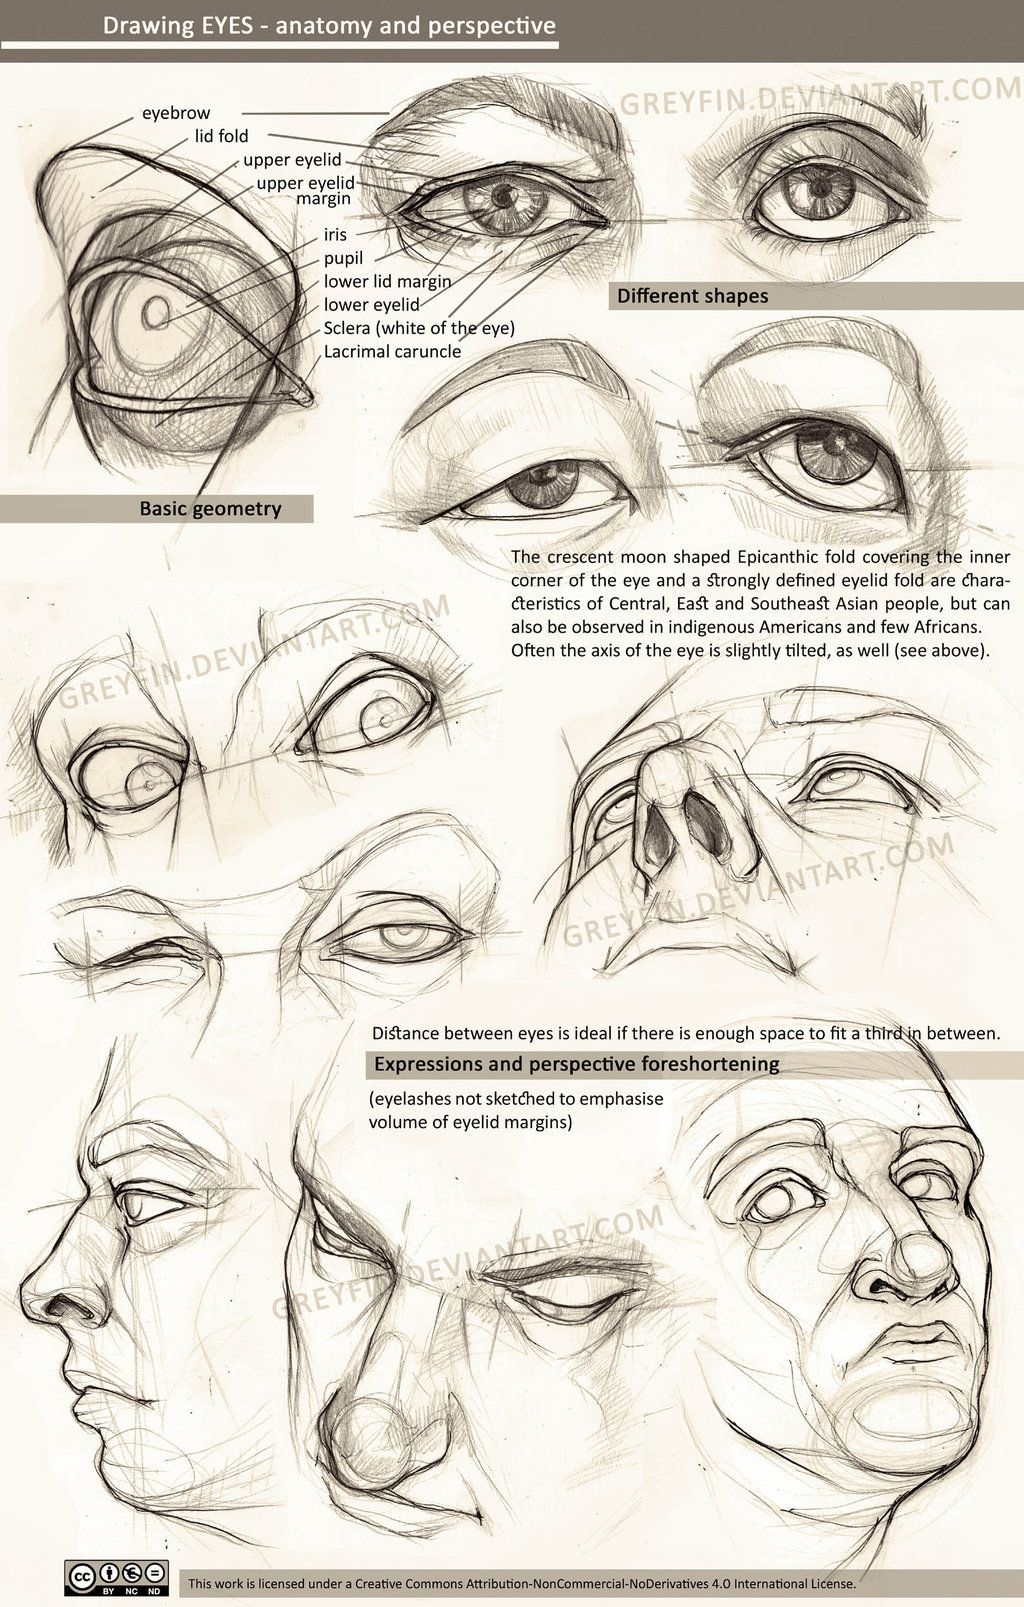 drawing eyes anatomy and perspective by greyfin [ 1024 x 1607 Pixel ]